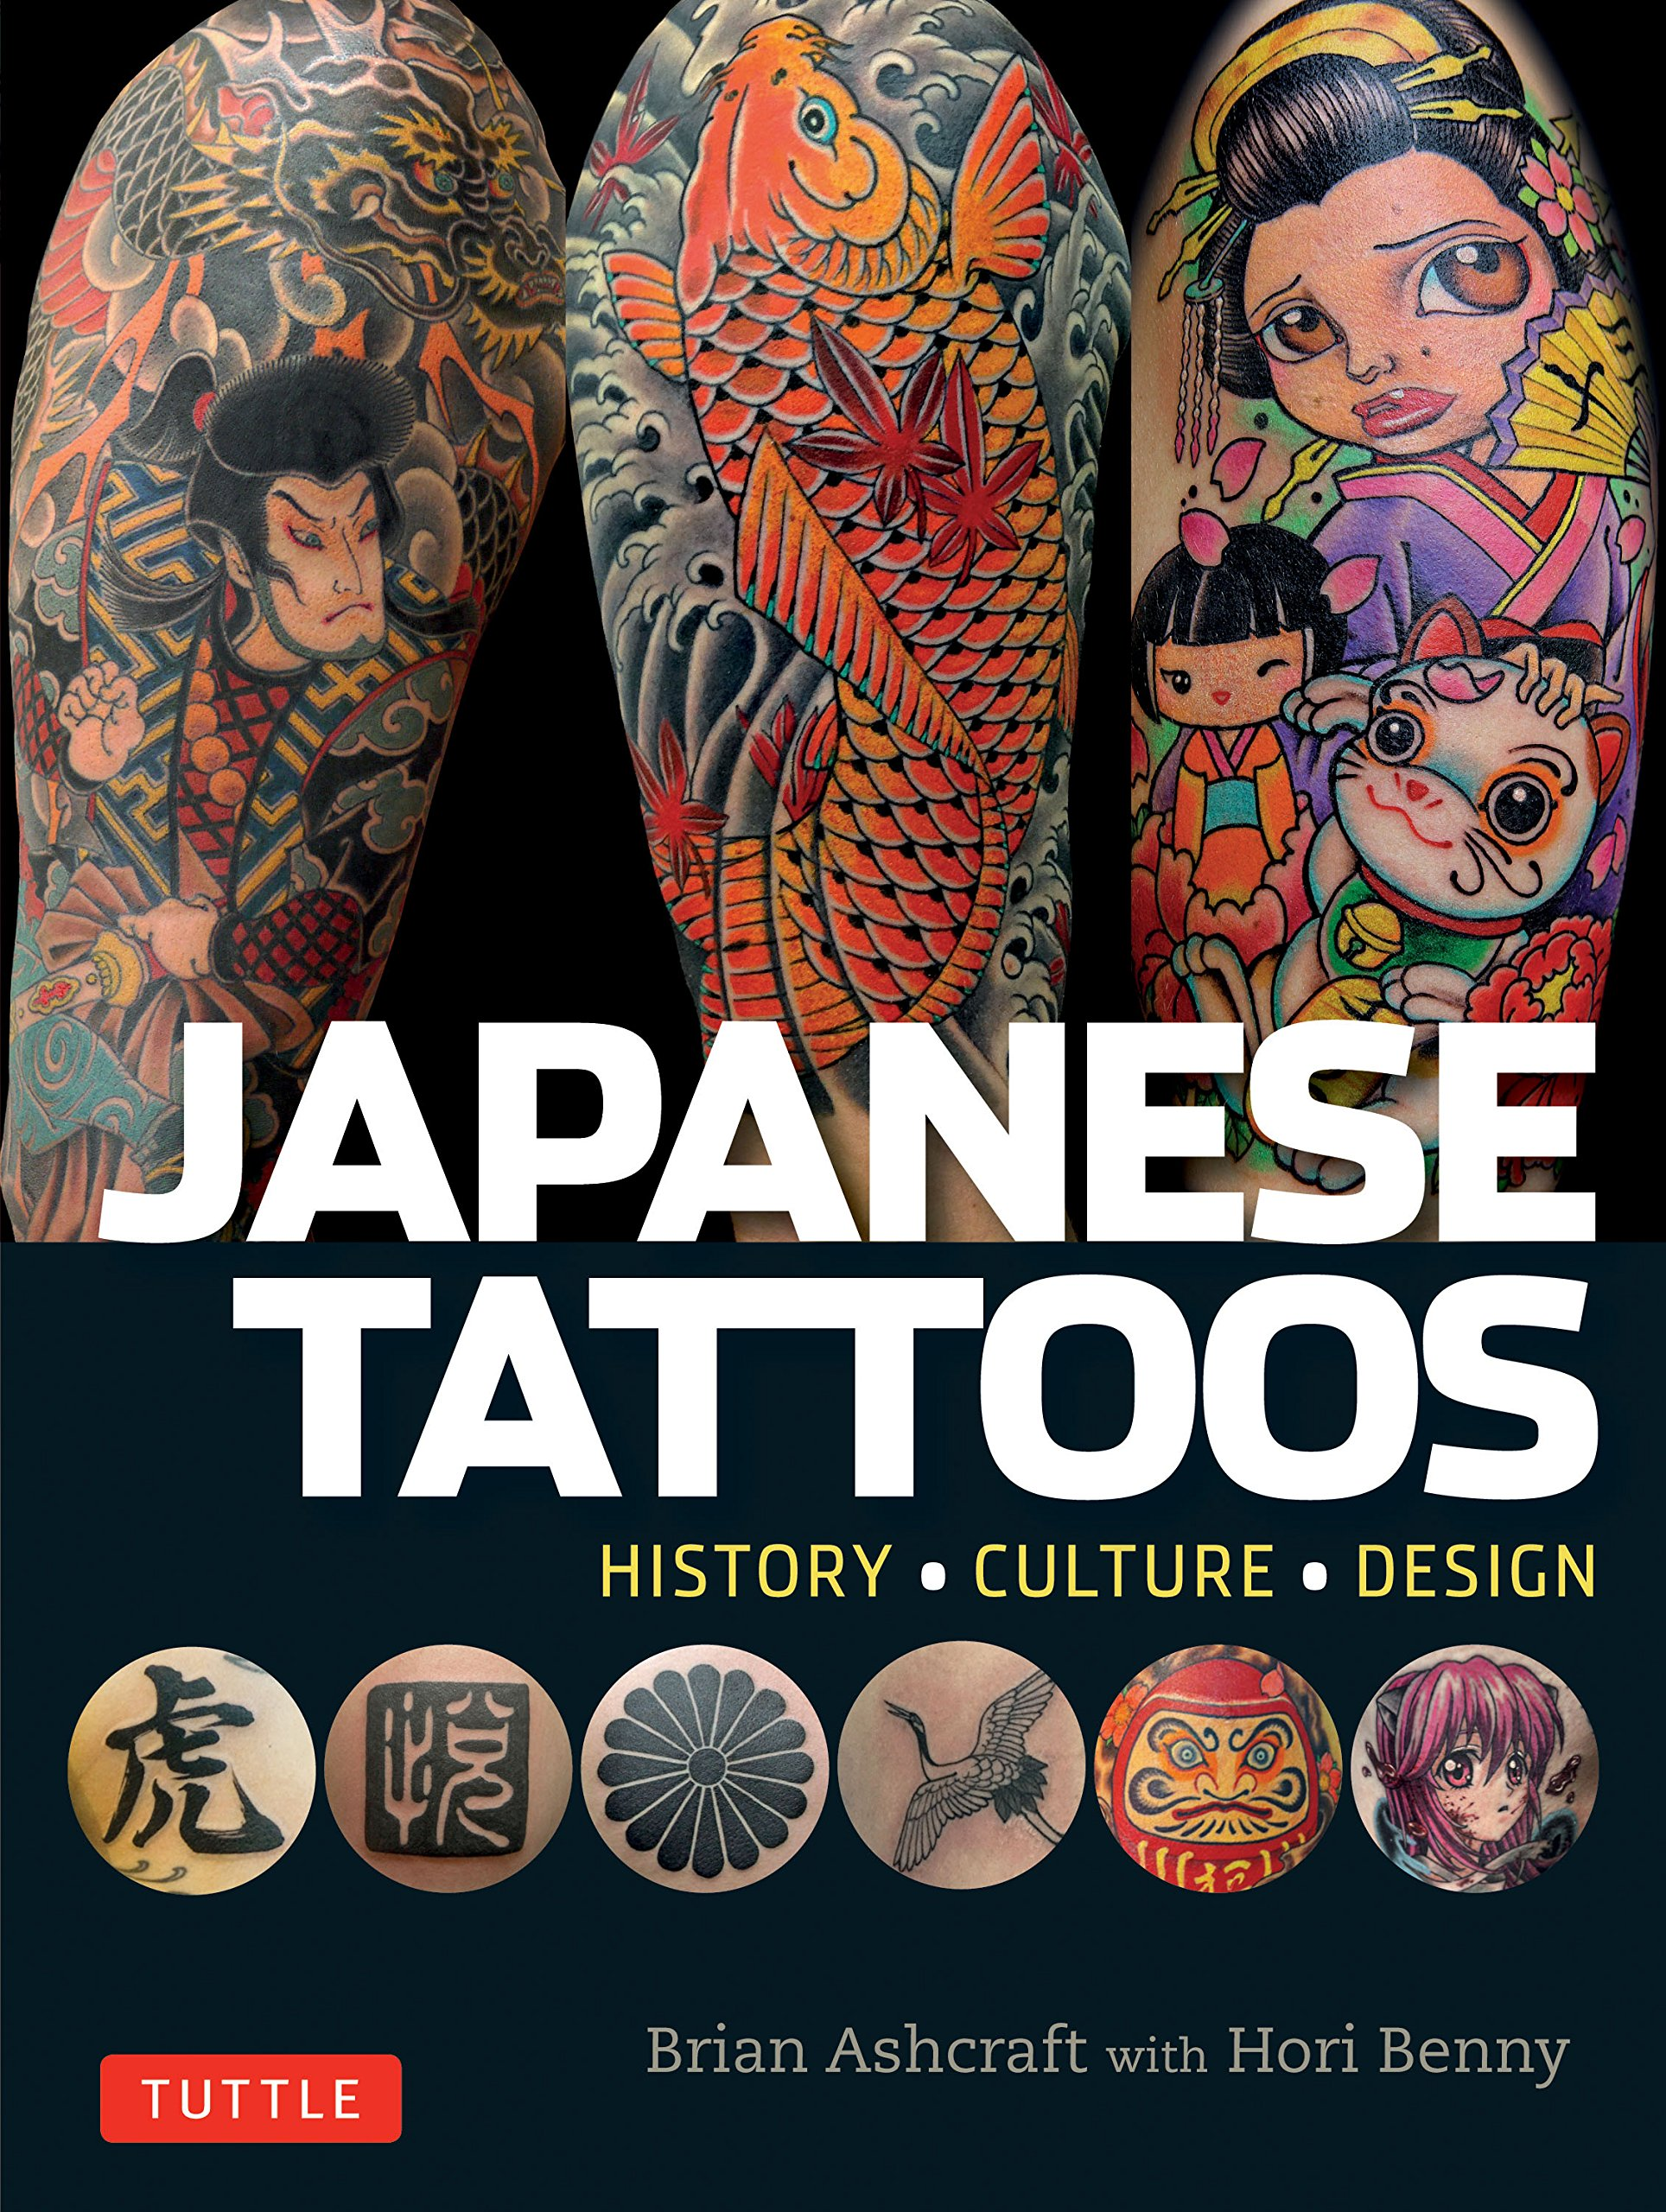 Amazon Com Japanese Tattoos History Culture Design 9784805313510 Brian Ashcraft Hori Benny Books